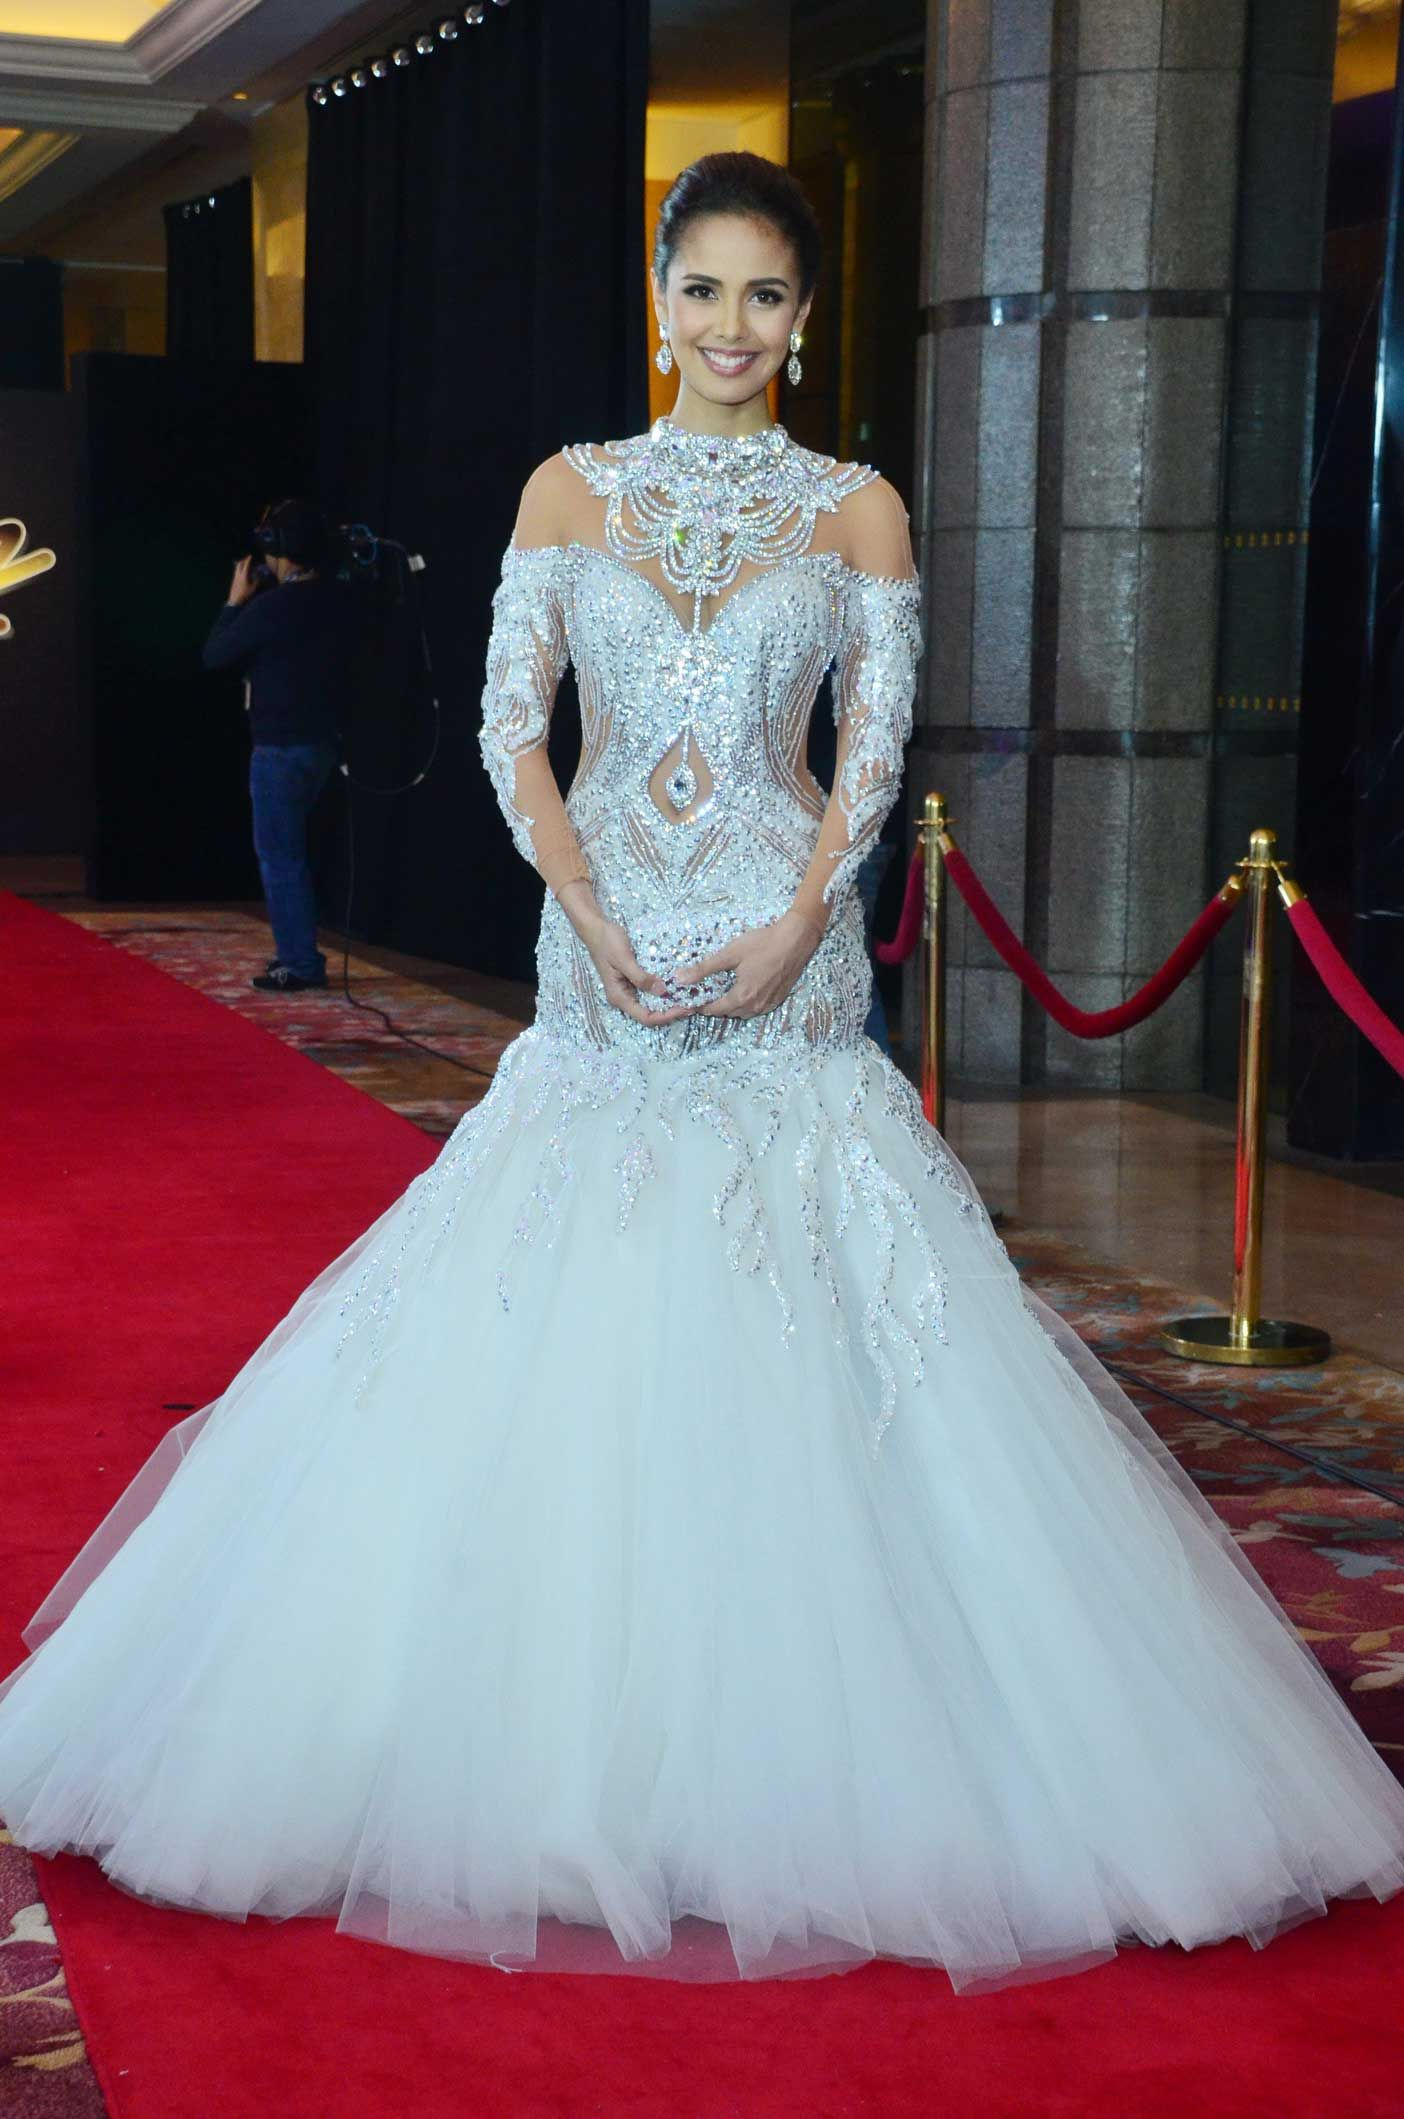 Miss World 2013 Megan Young in a white gown by Leo Almodal at the ...